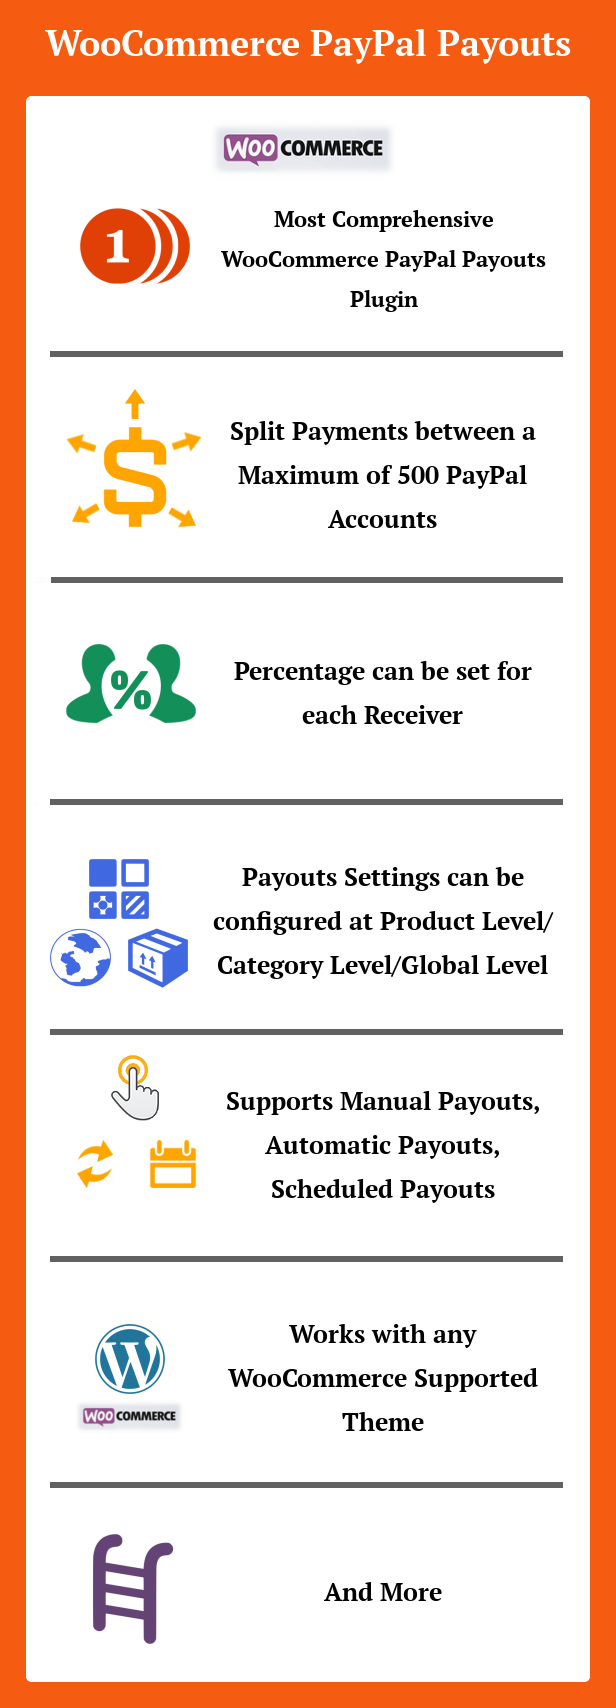 WooCommerce PayPal Payouts - 1